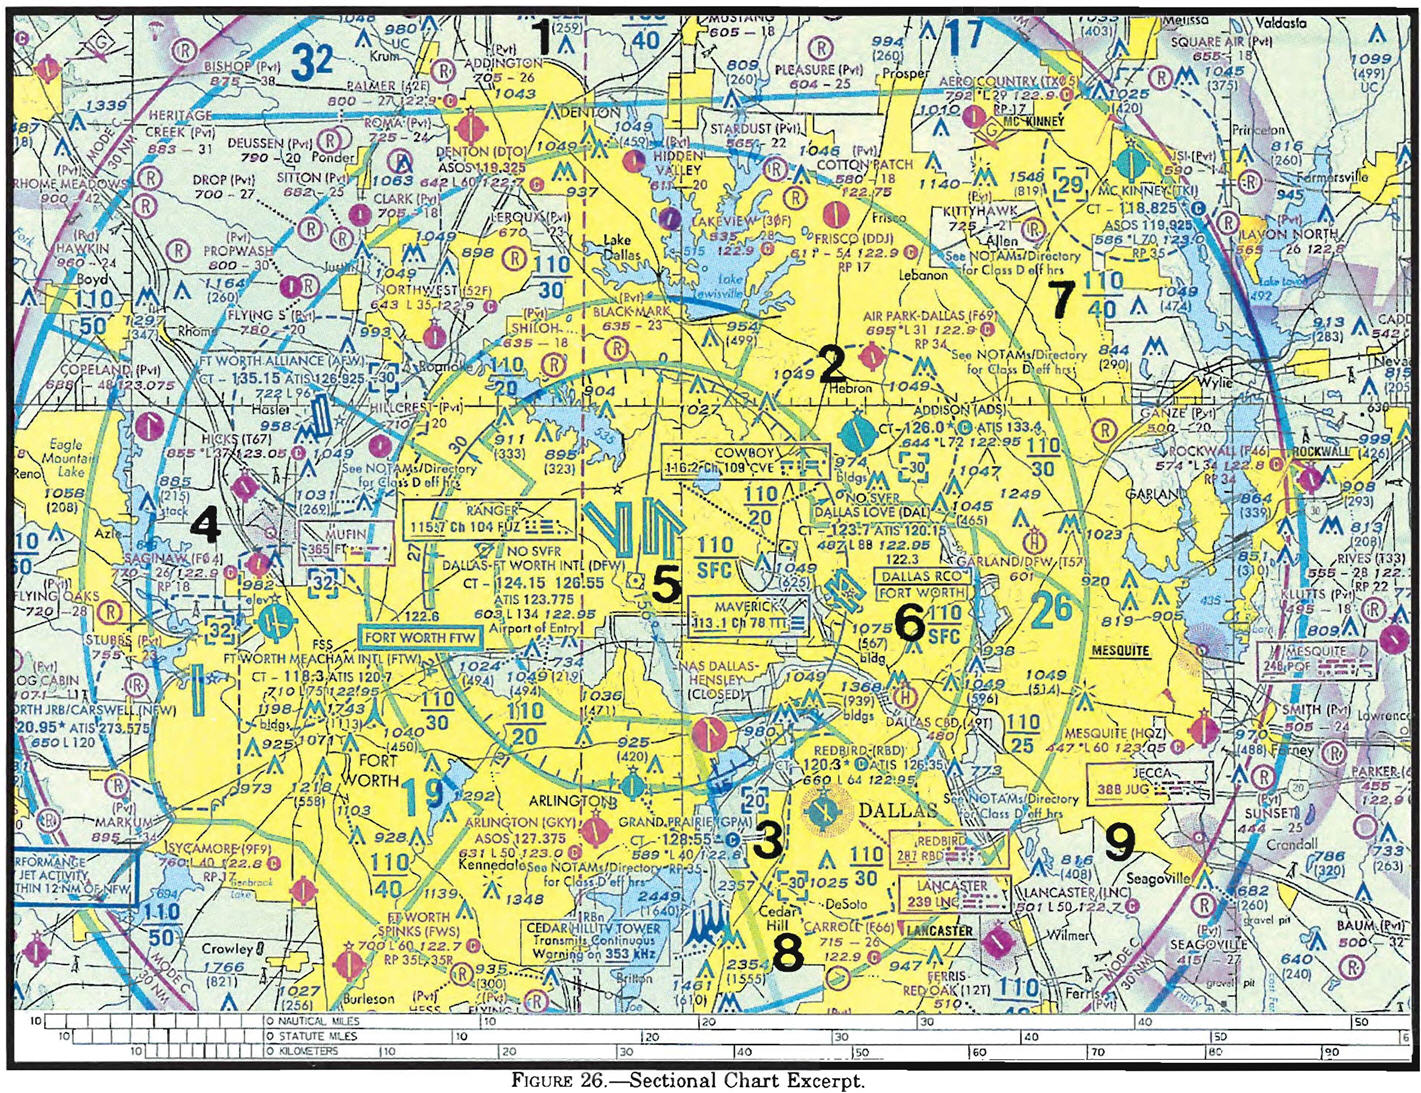 Ascent Ground School BETA Ascent Ground School BETA - Class g airspace map